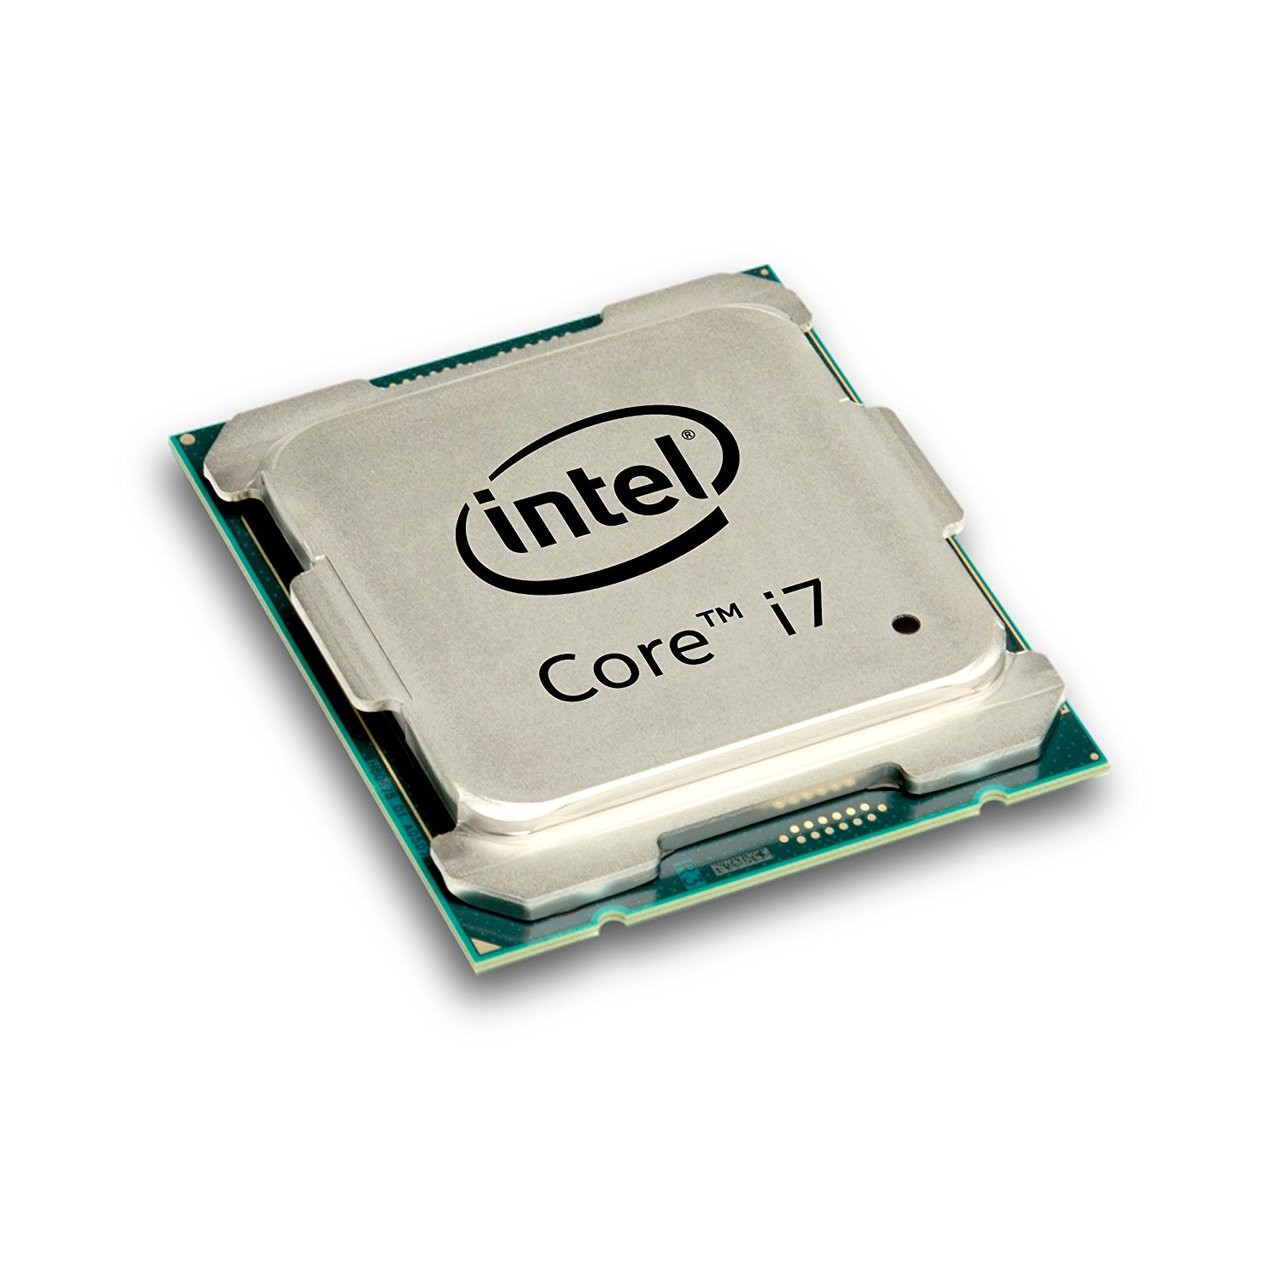 Intel Core i7-7700 3 60GHz Socket-1151 Quad-core Desktop OEM CPU SR338  CM8067702868314